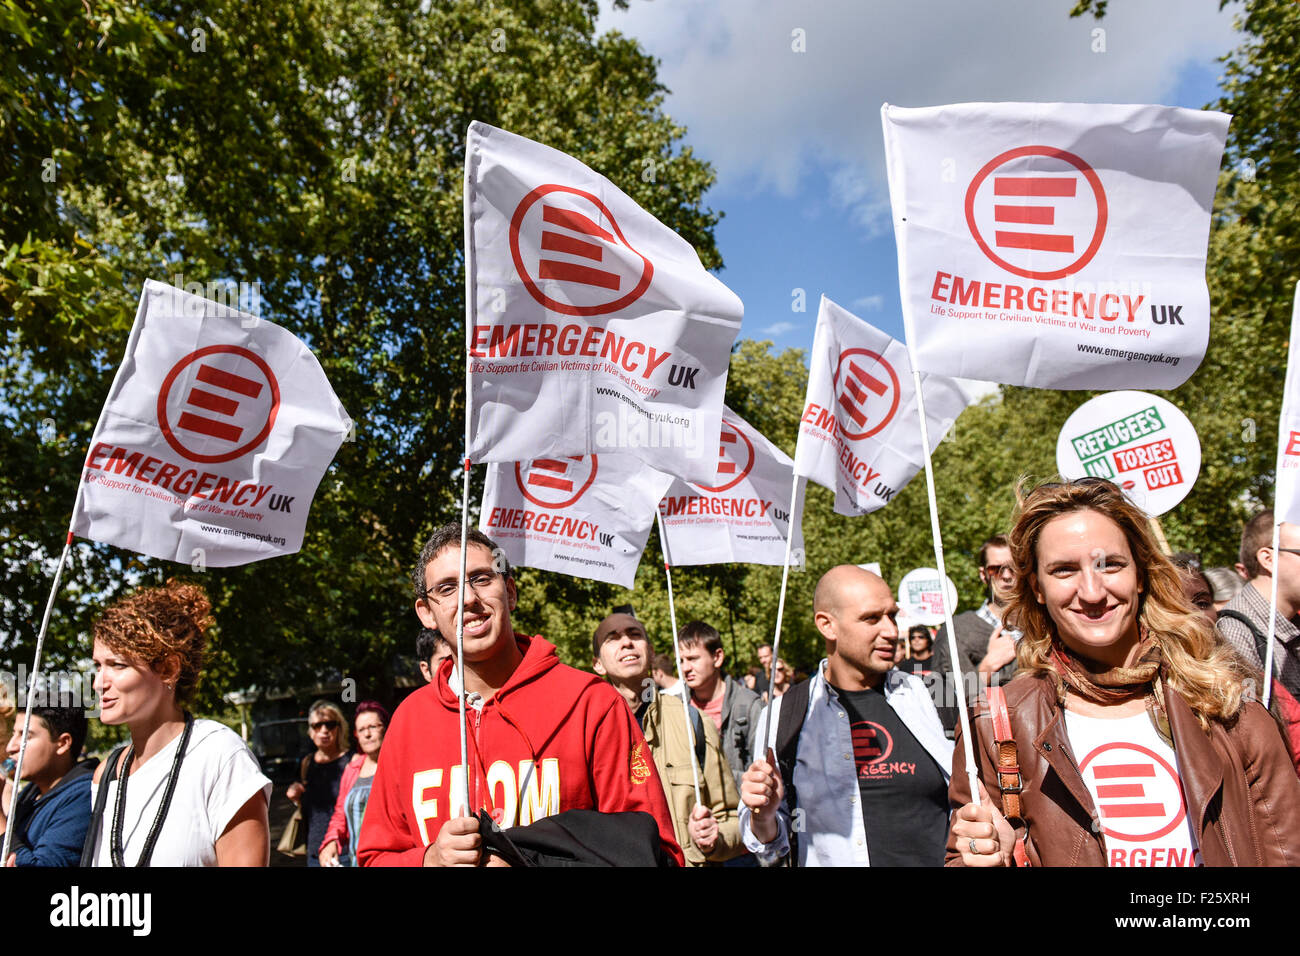 London, UK. 12th September 2015. Colourful flags held aloft by demonstrators marching in support of refugees.  Credit: - Stock Image